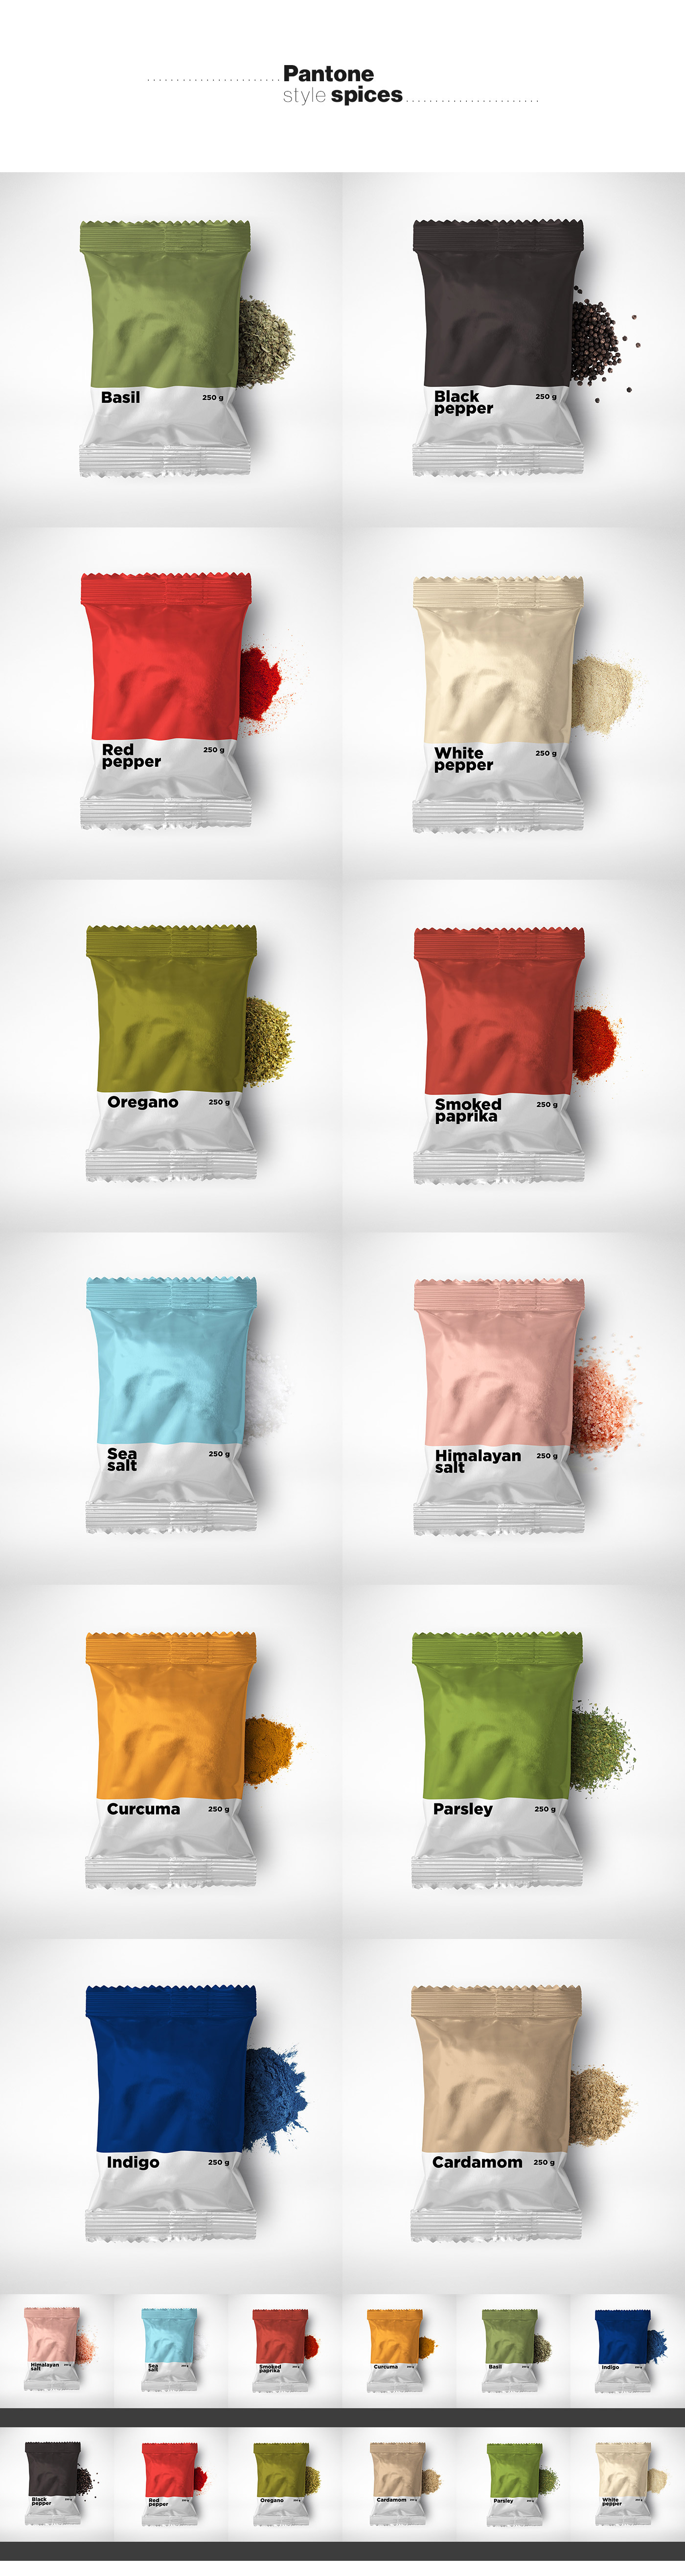 packaging para especias inspirado en colores Pantone